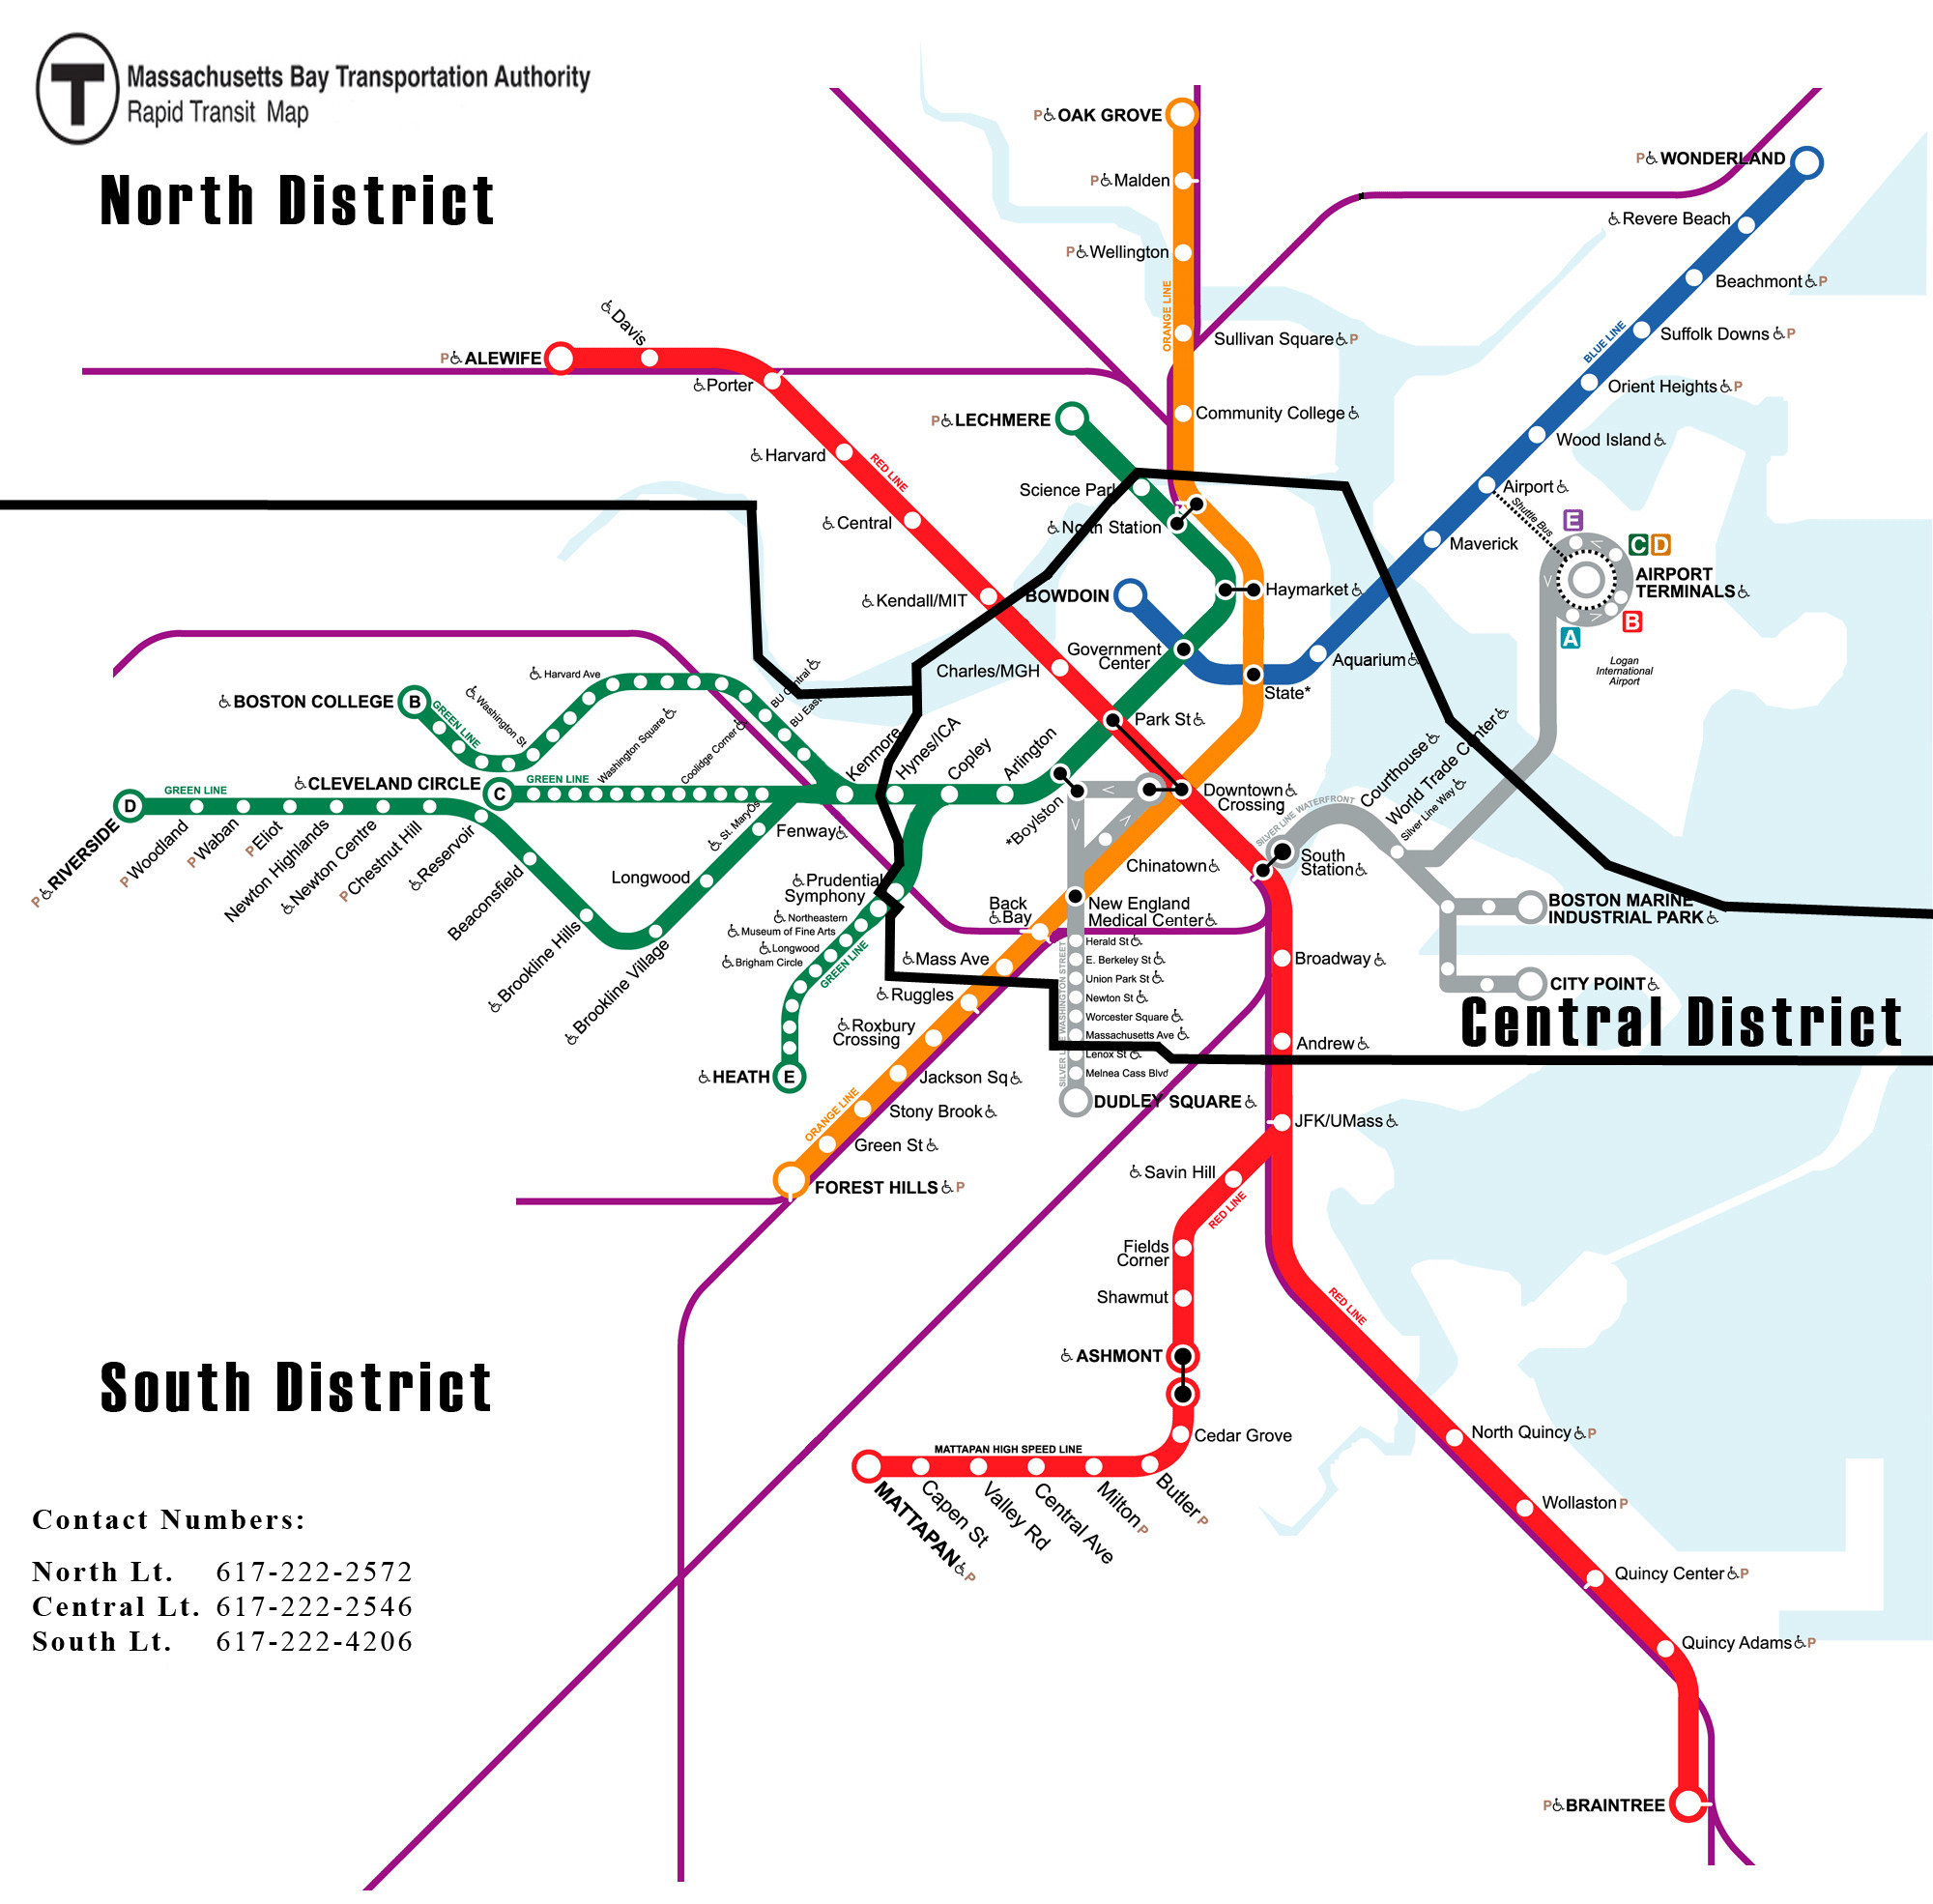 MBTAcom Transit Police - Us map of commuter railroads